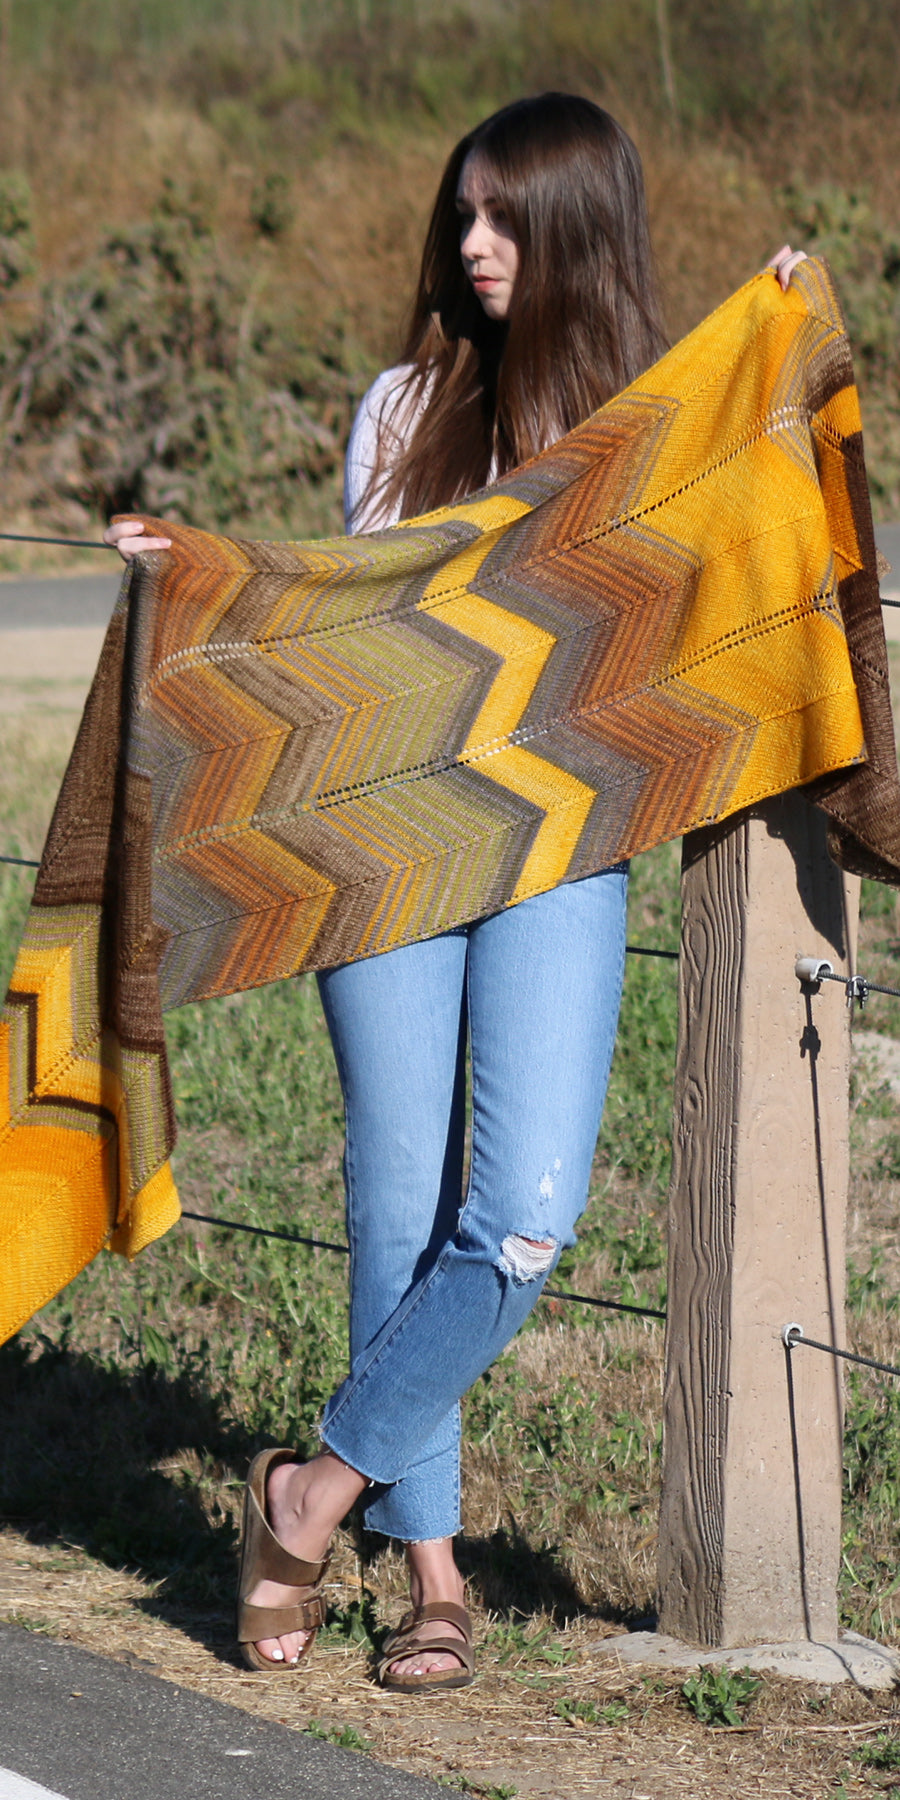 Bommer Canyon Wrap knit in Urth Yarns Uneek and Monokrom fingering